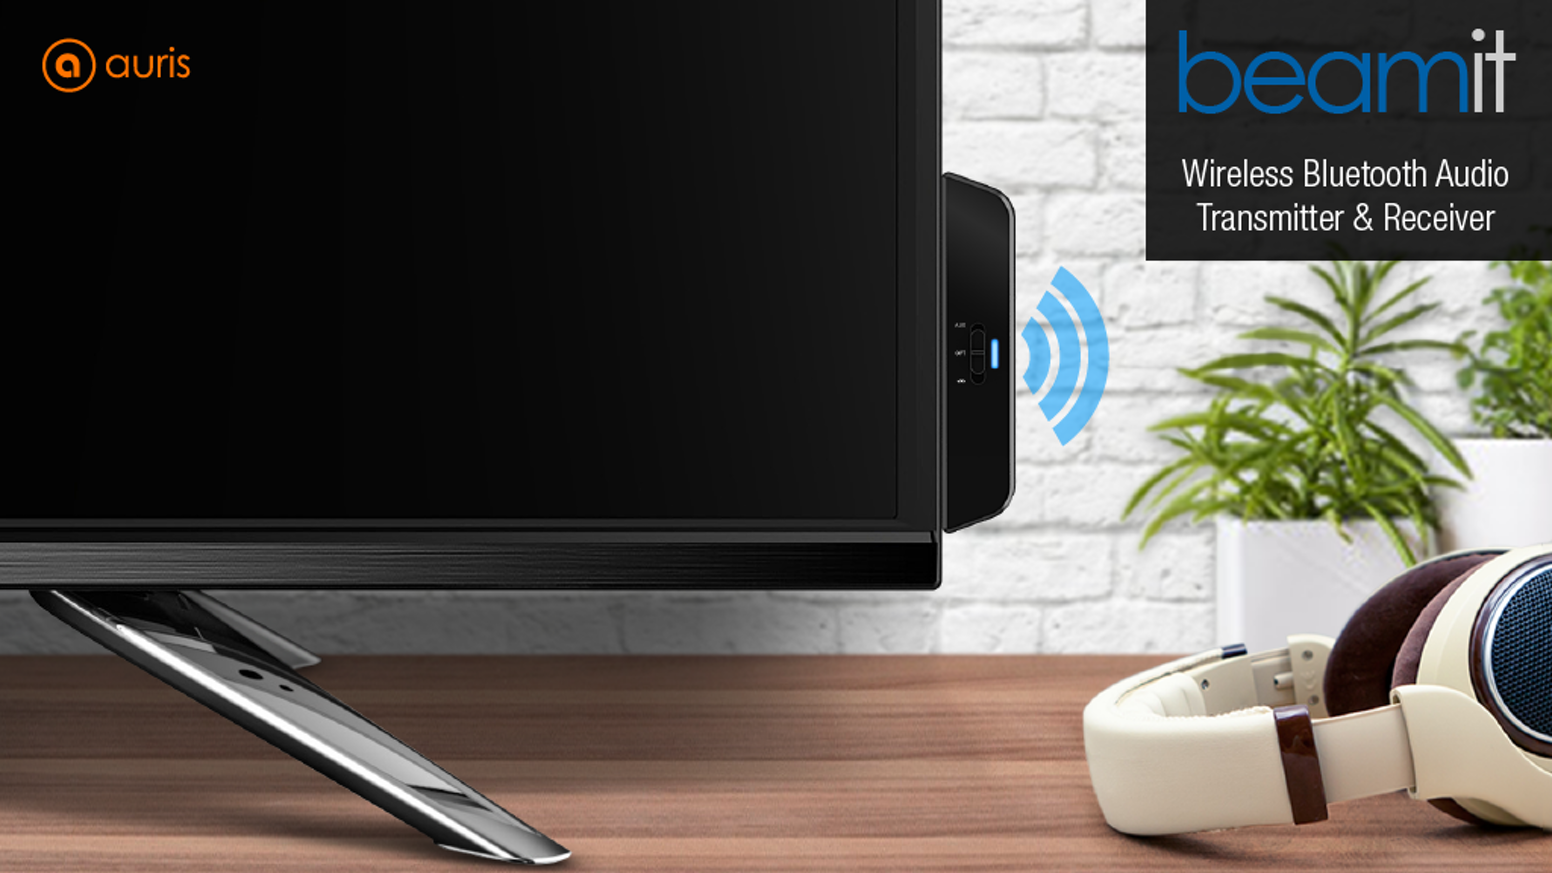 The ultimate solution for your TV or Home Audio Systems to wirelessly stream HiFi audio directly to any Bluetooth headphone or speaker.